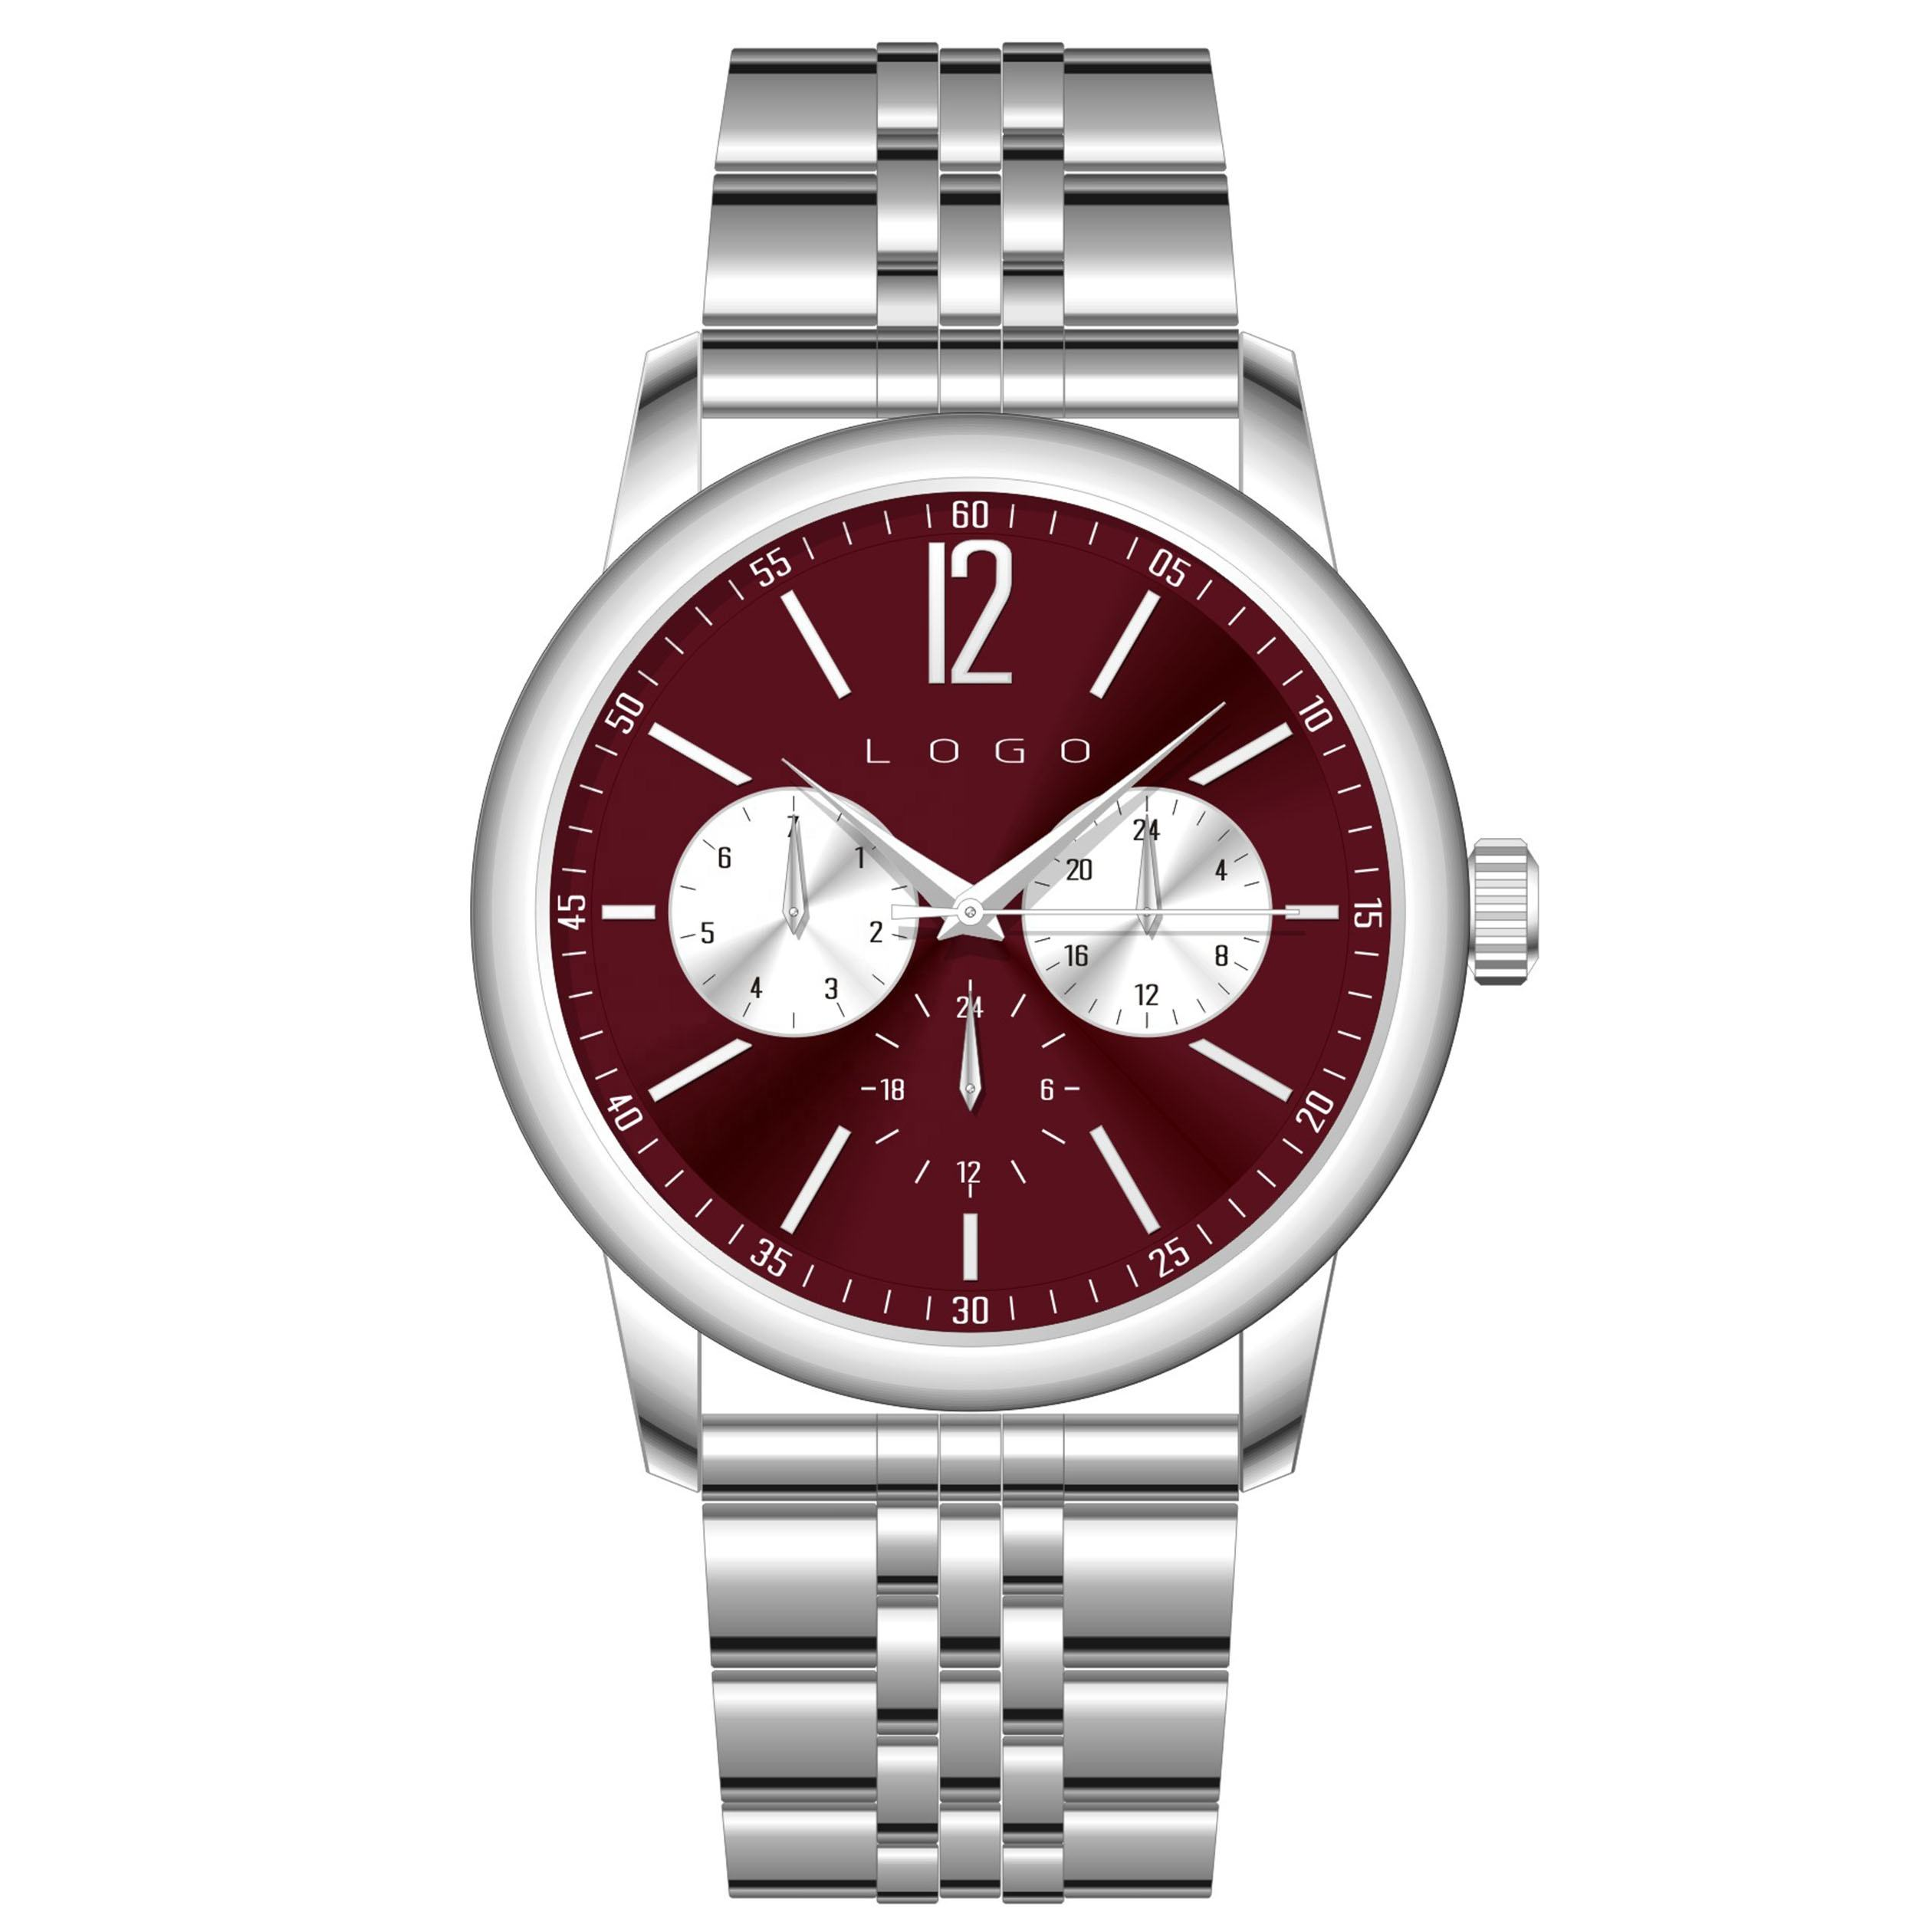 Day date water resistant high quality 3 eyes dress fashion men slim minimalistic silver watch